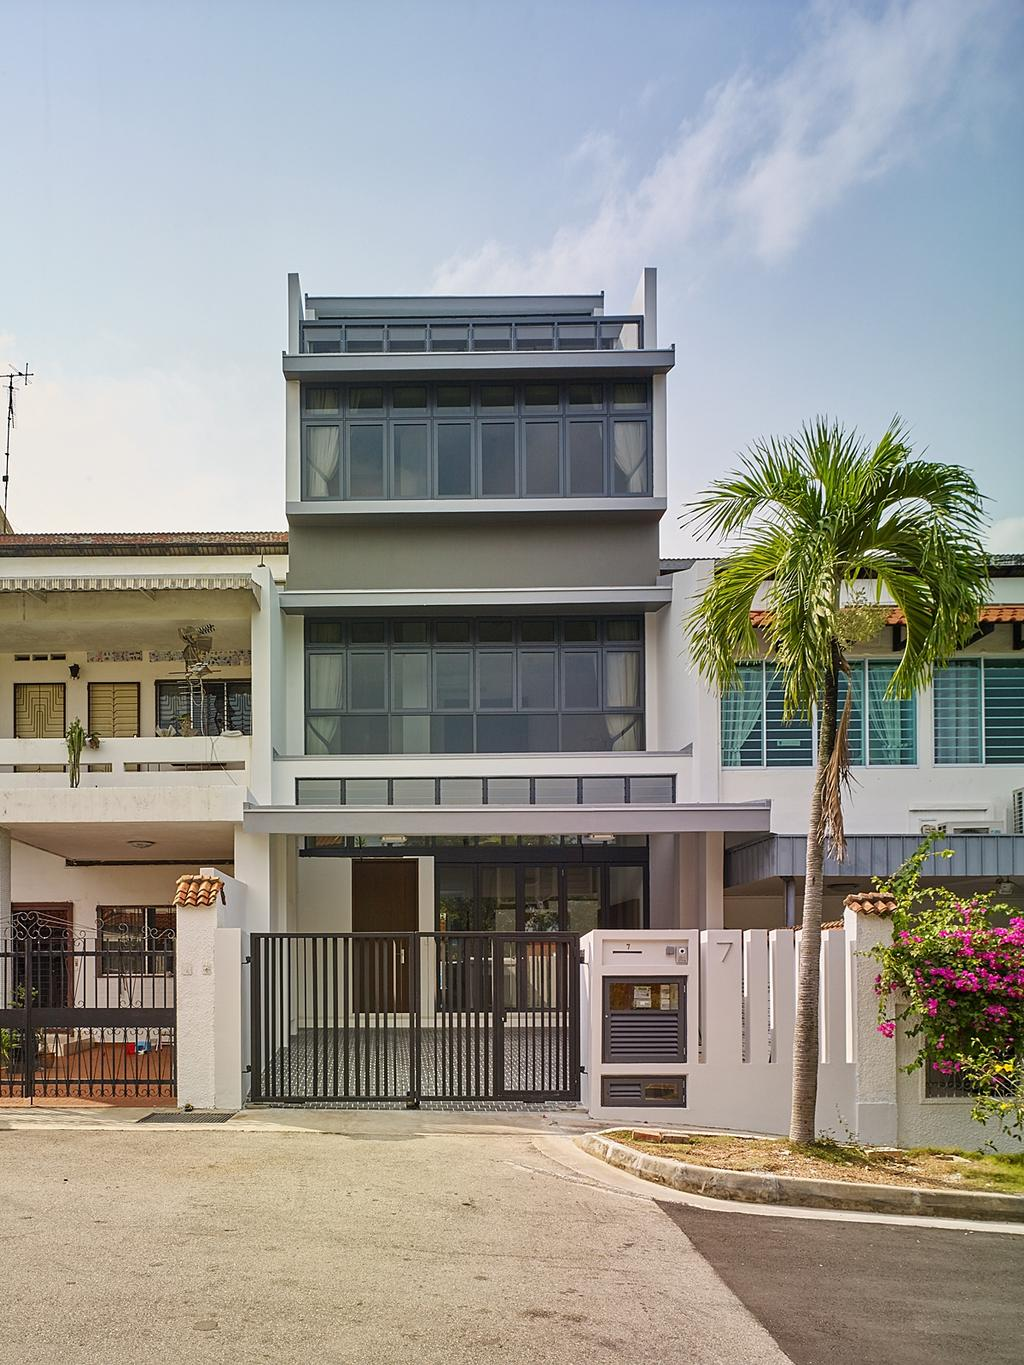 Modern, Landed, House at TS, Architect, OWMF Architecture, Arecaceae, Flora, Palm Tree, Plant, Tree, Building, Housing, House, Villa, Jar, Potted Plant, Pottery, Vase